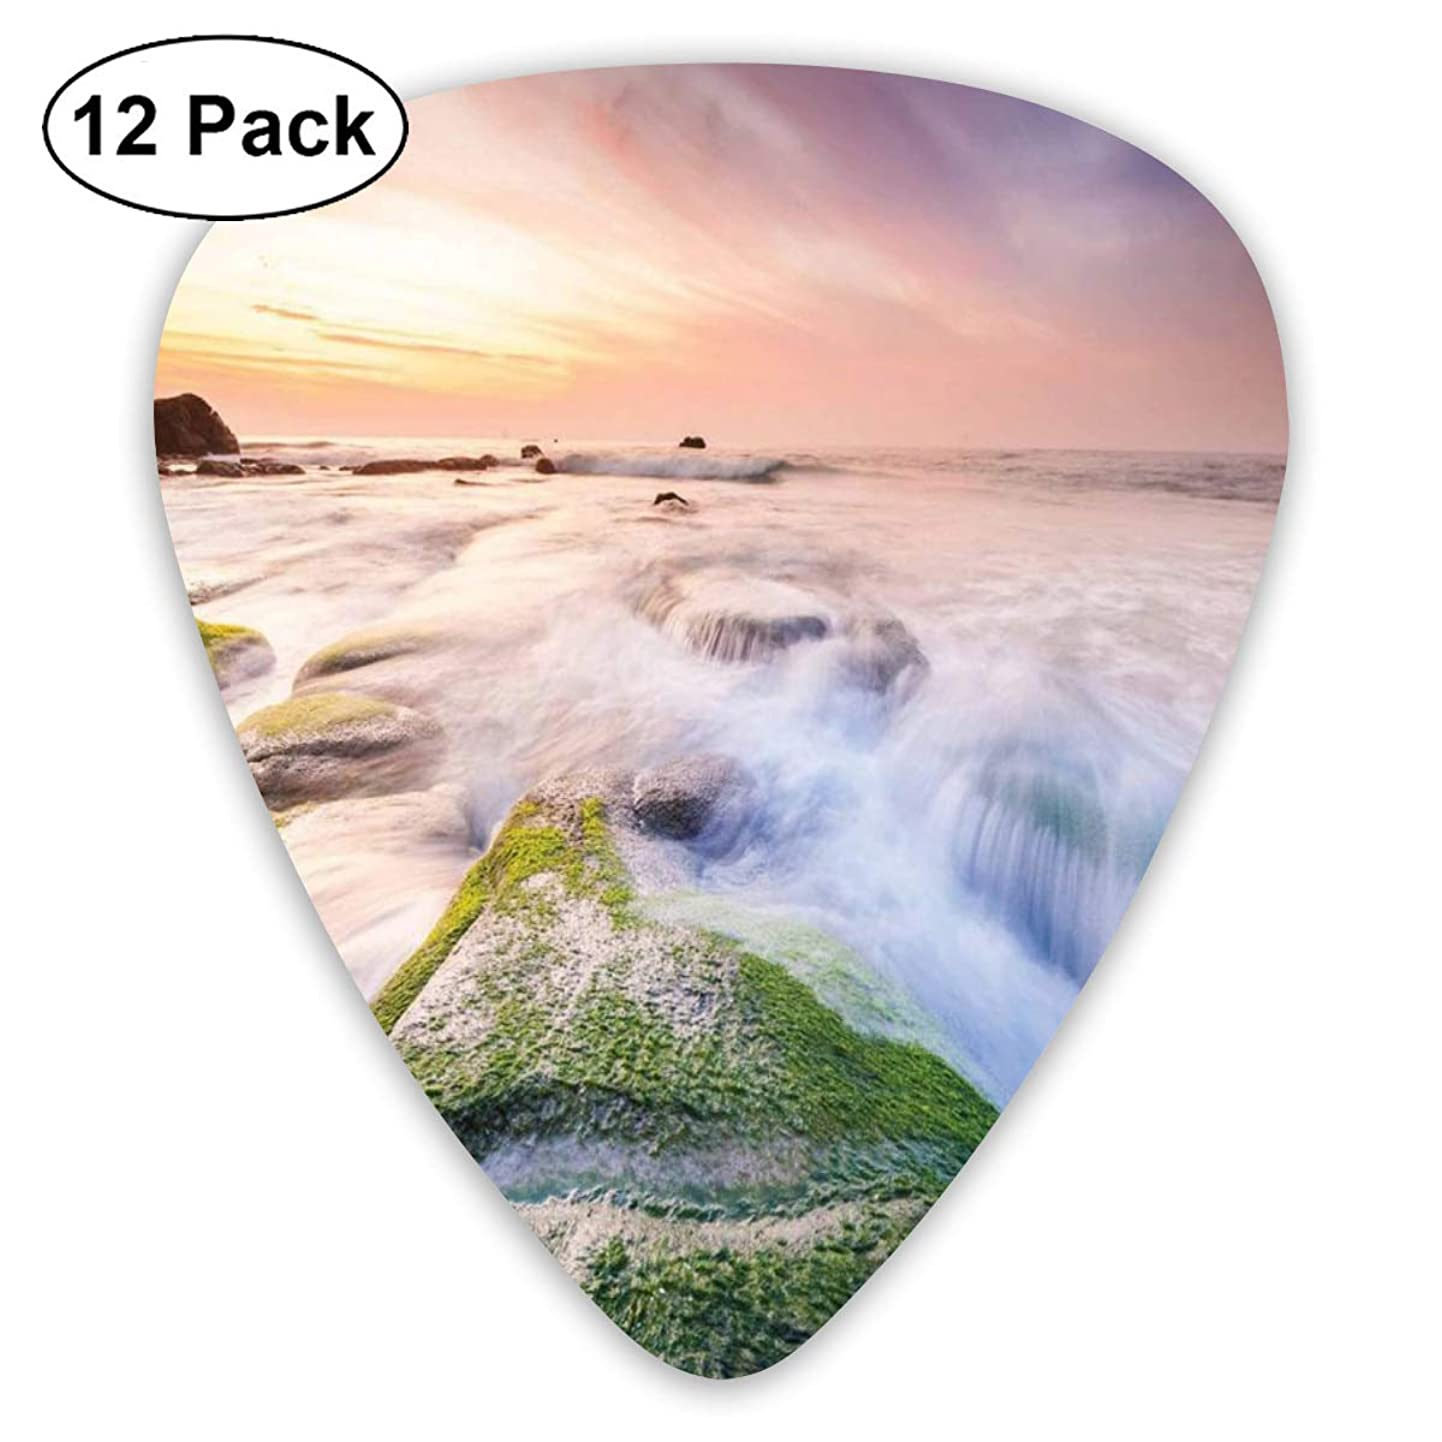 Guitar Picks 12-Pack,Malaysia Landmark Nature Wonders Photo Of Fountains Stream Mossy Rocks With Ombre Sky czvxsiqxylh1